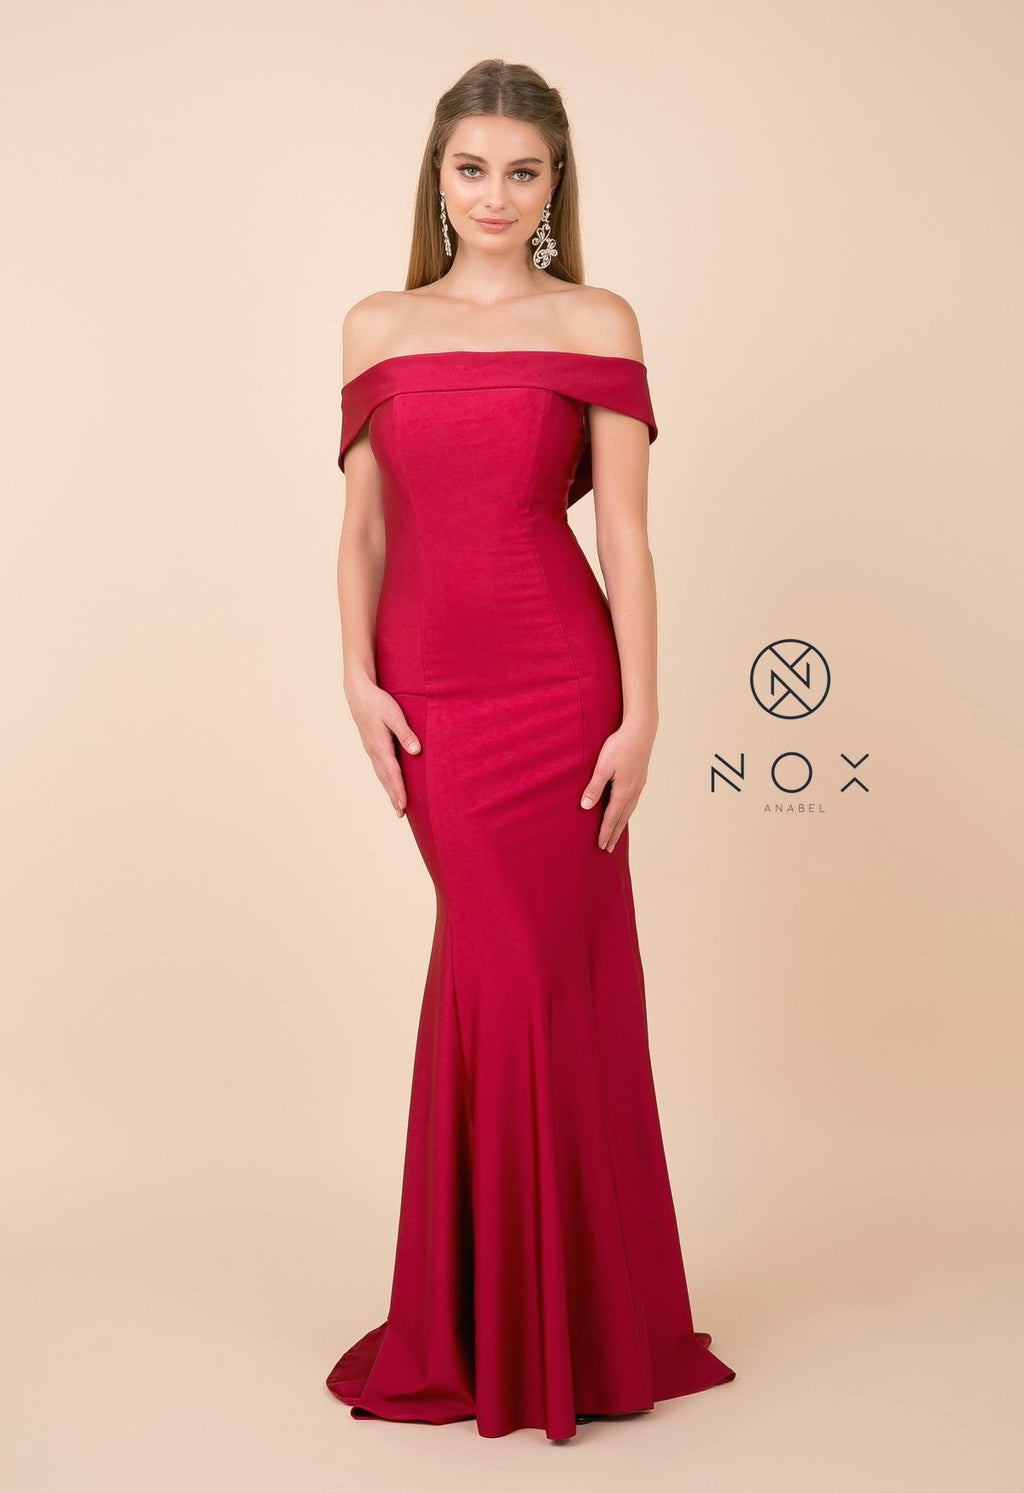 Nox Anabel N295 Off Shoulder Trumpet Dress